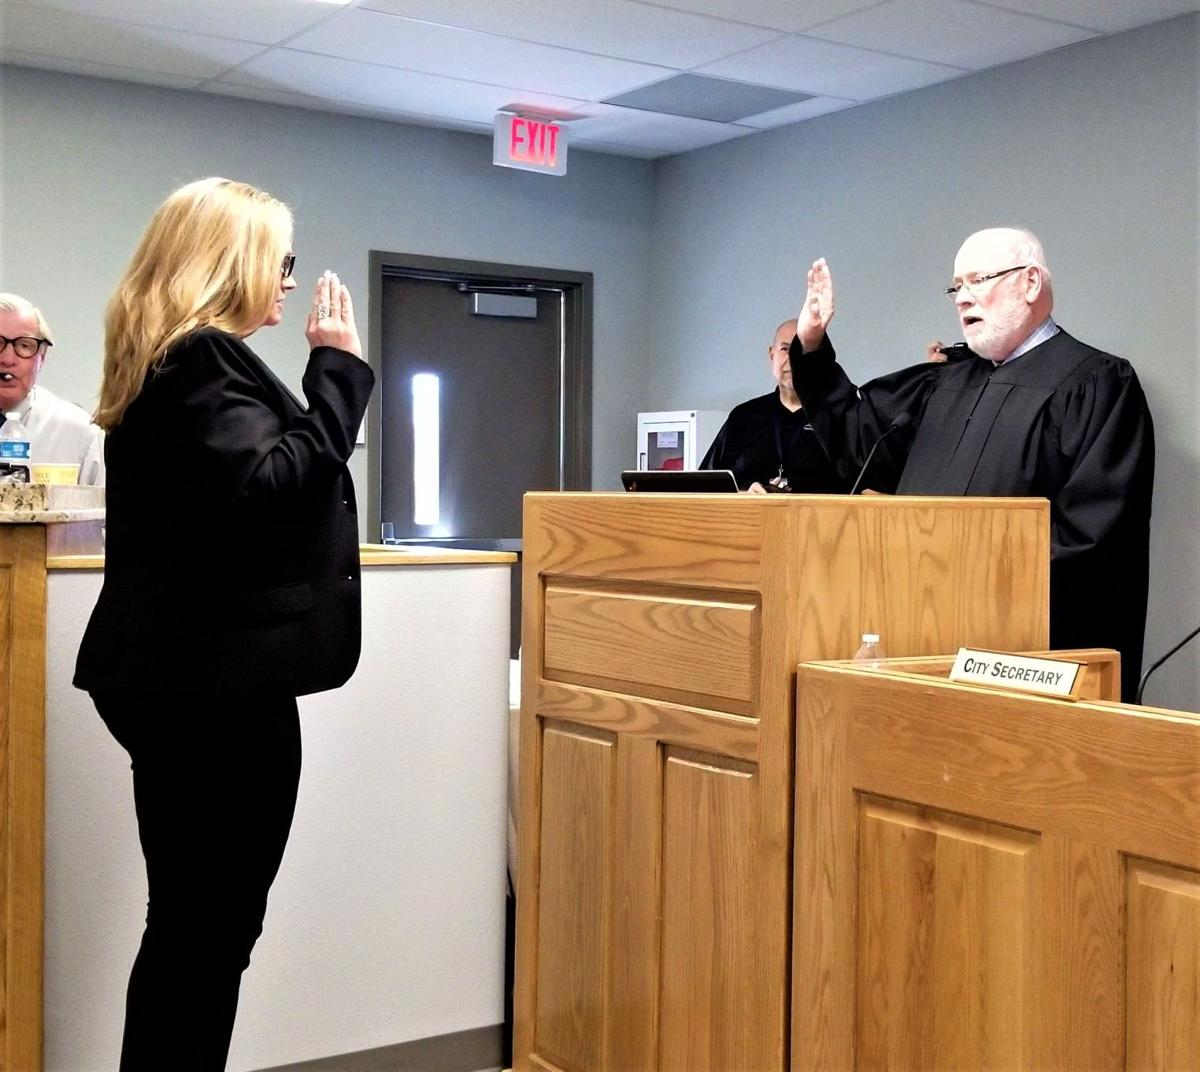 Cove council - Diaz takes oath